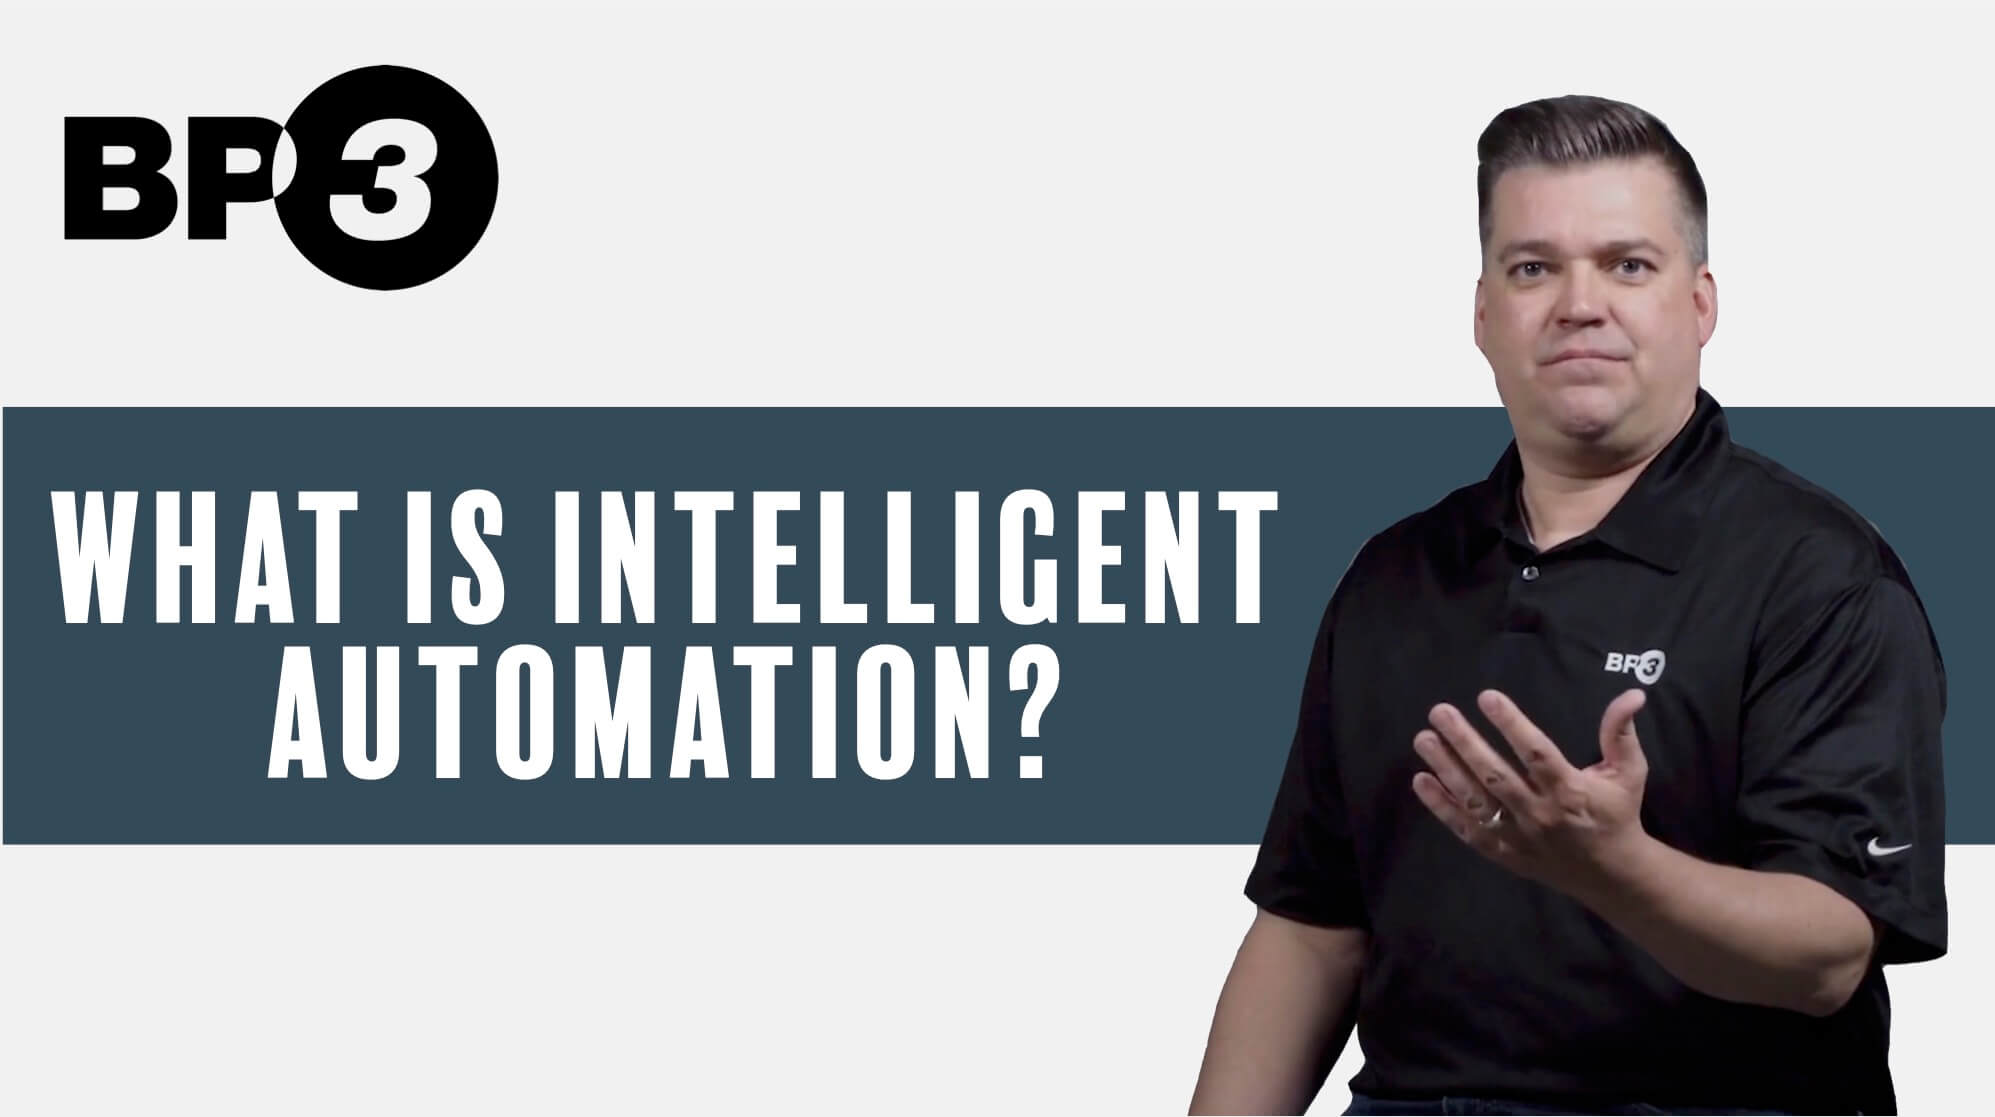 encapsulate the AI or Machine Learning in it's own layer or component, and you encapsulate the process or automation into it's own layer (or component